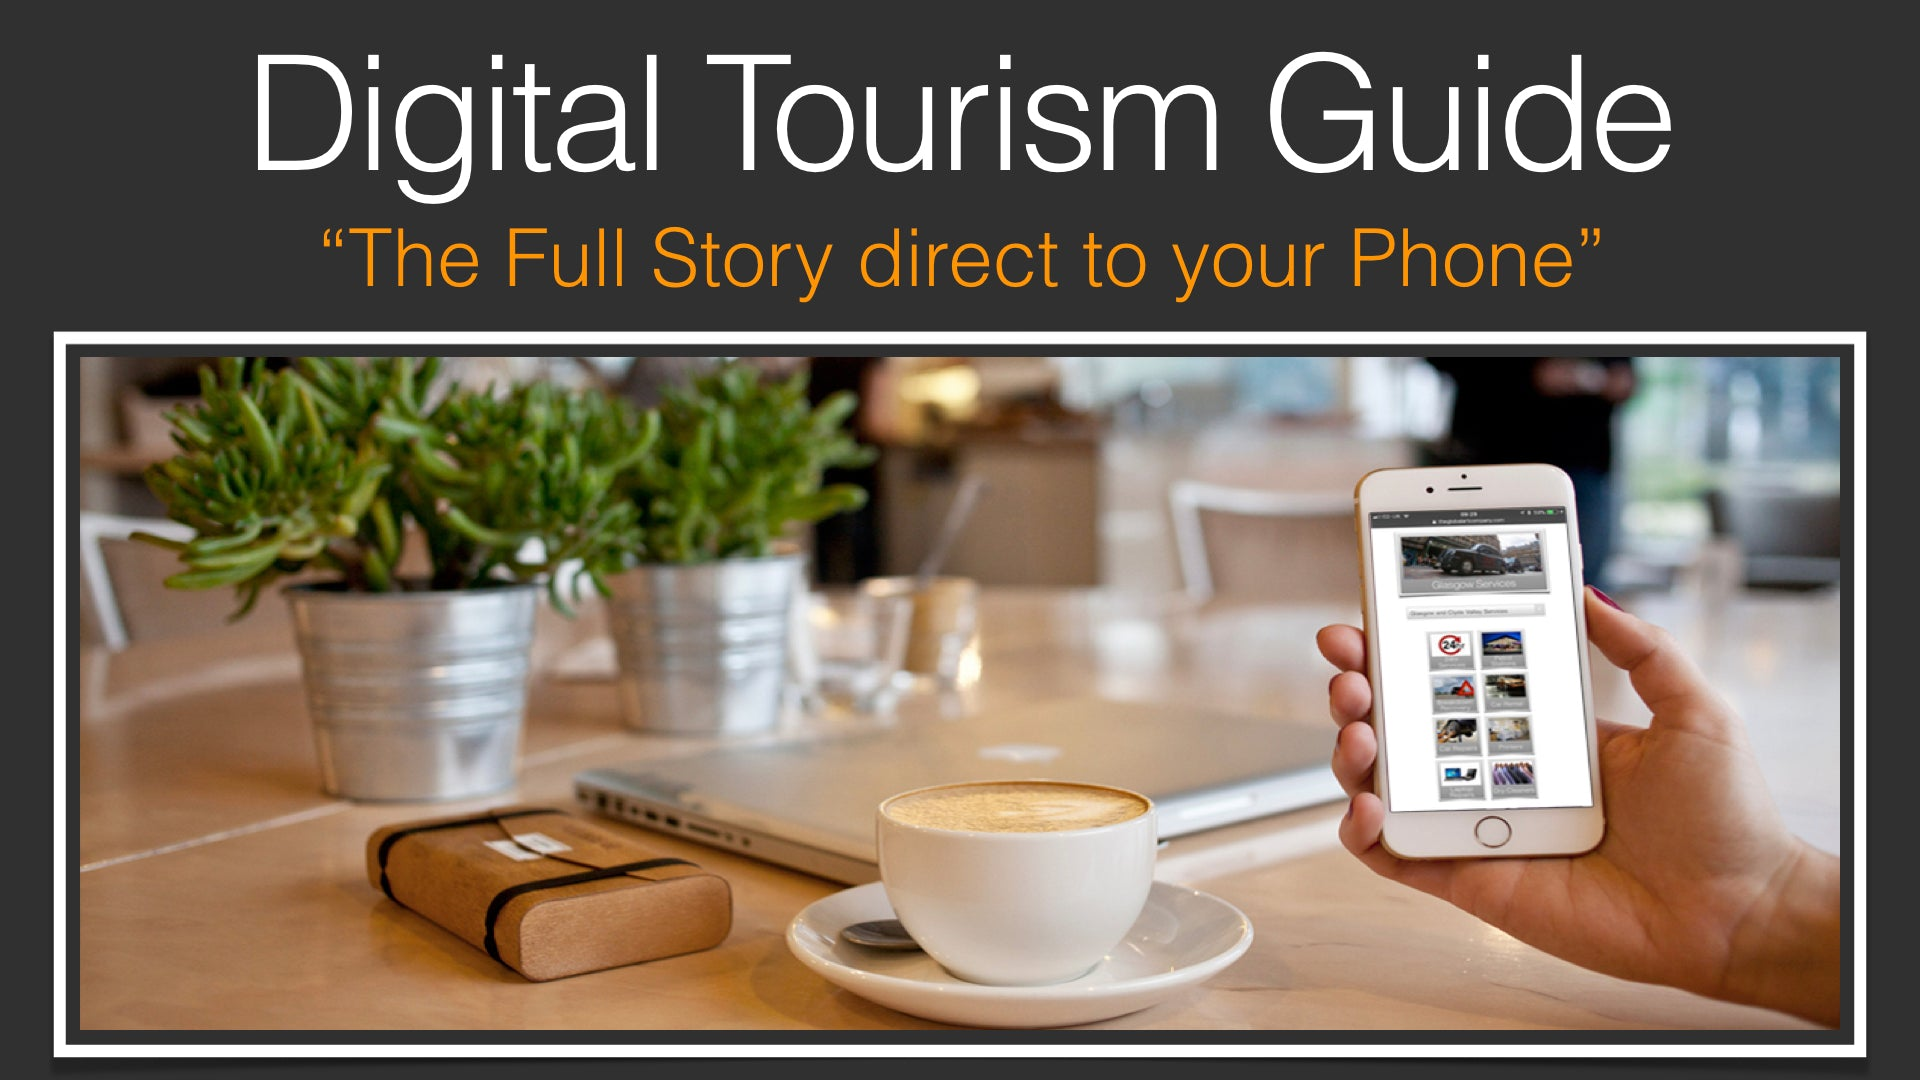 Digital Tourism Guide